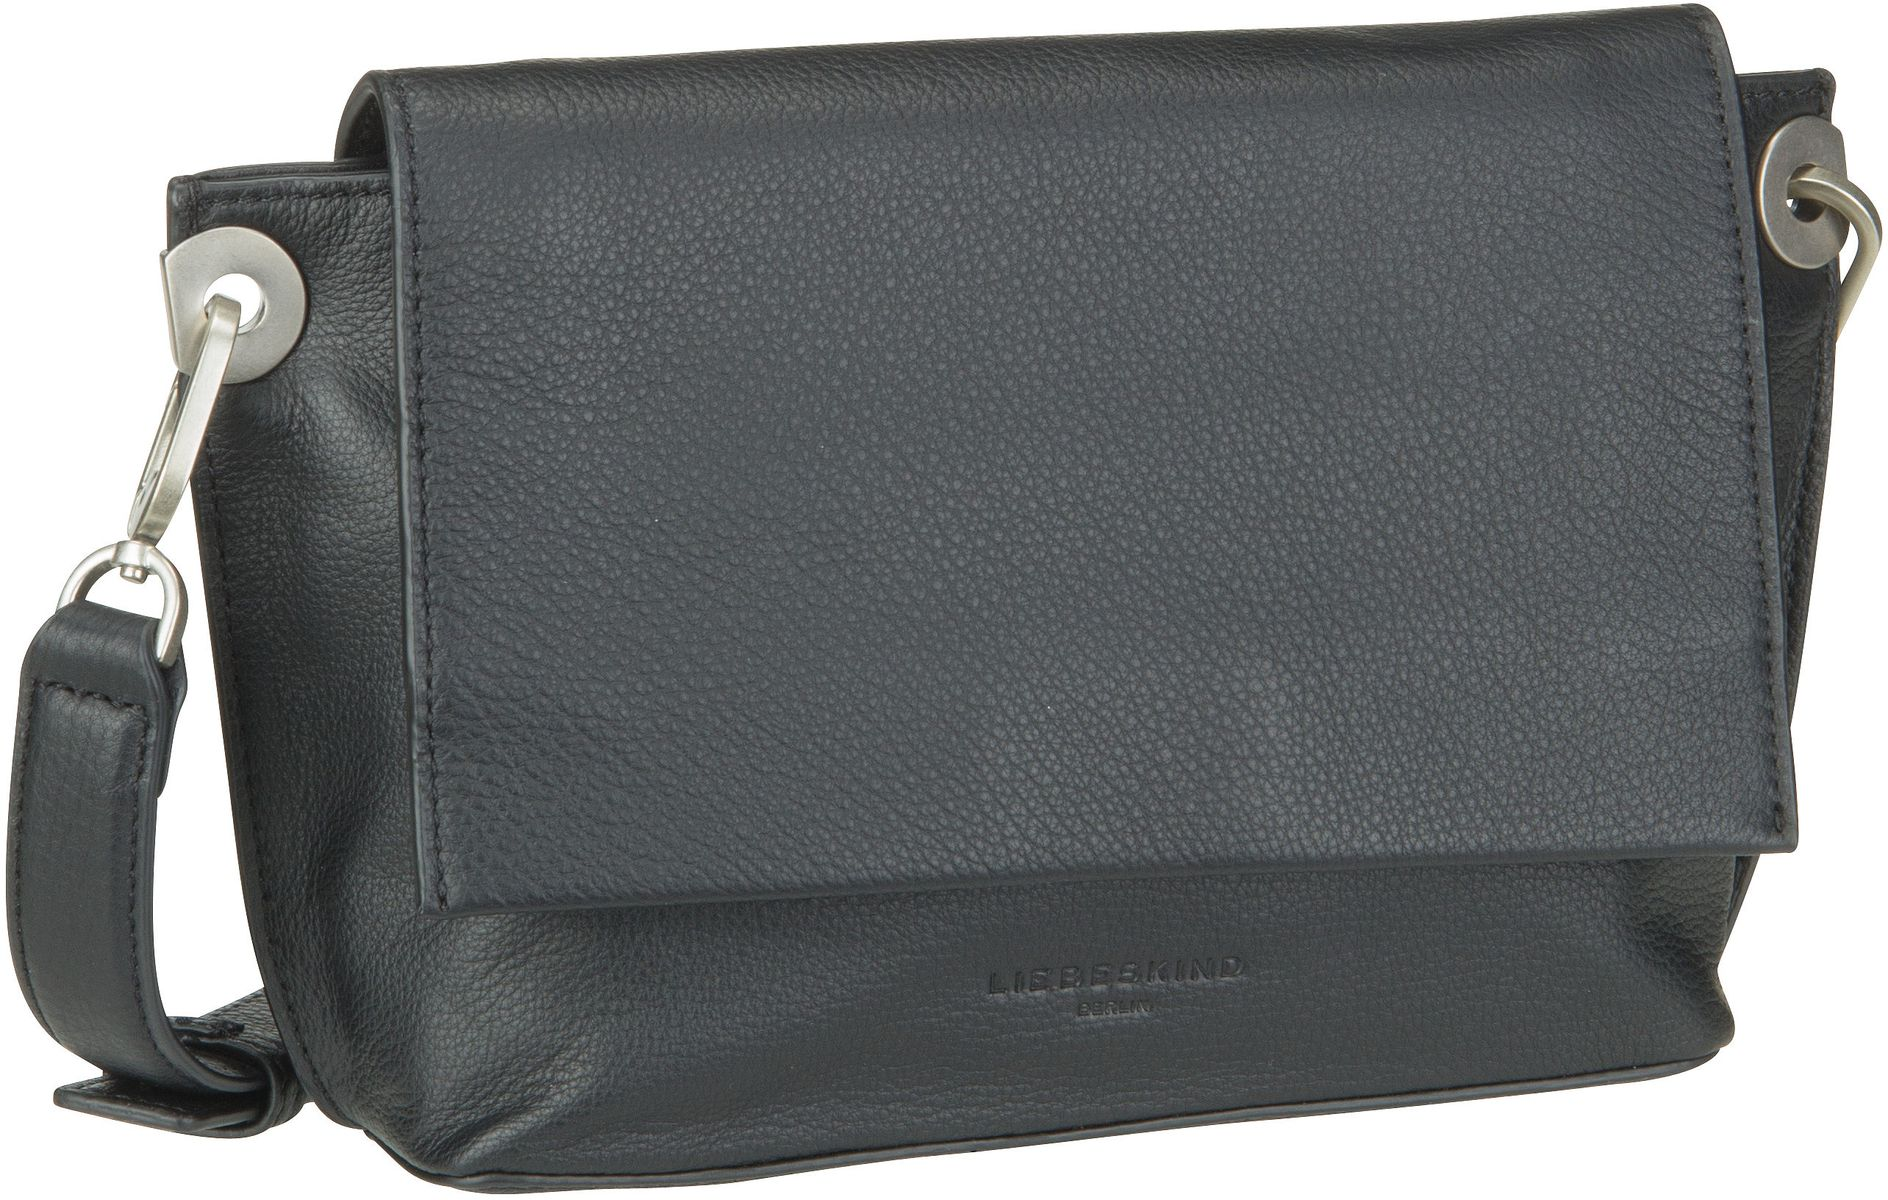 Berlin Umhängetasche Quince Messenger Bag S Black